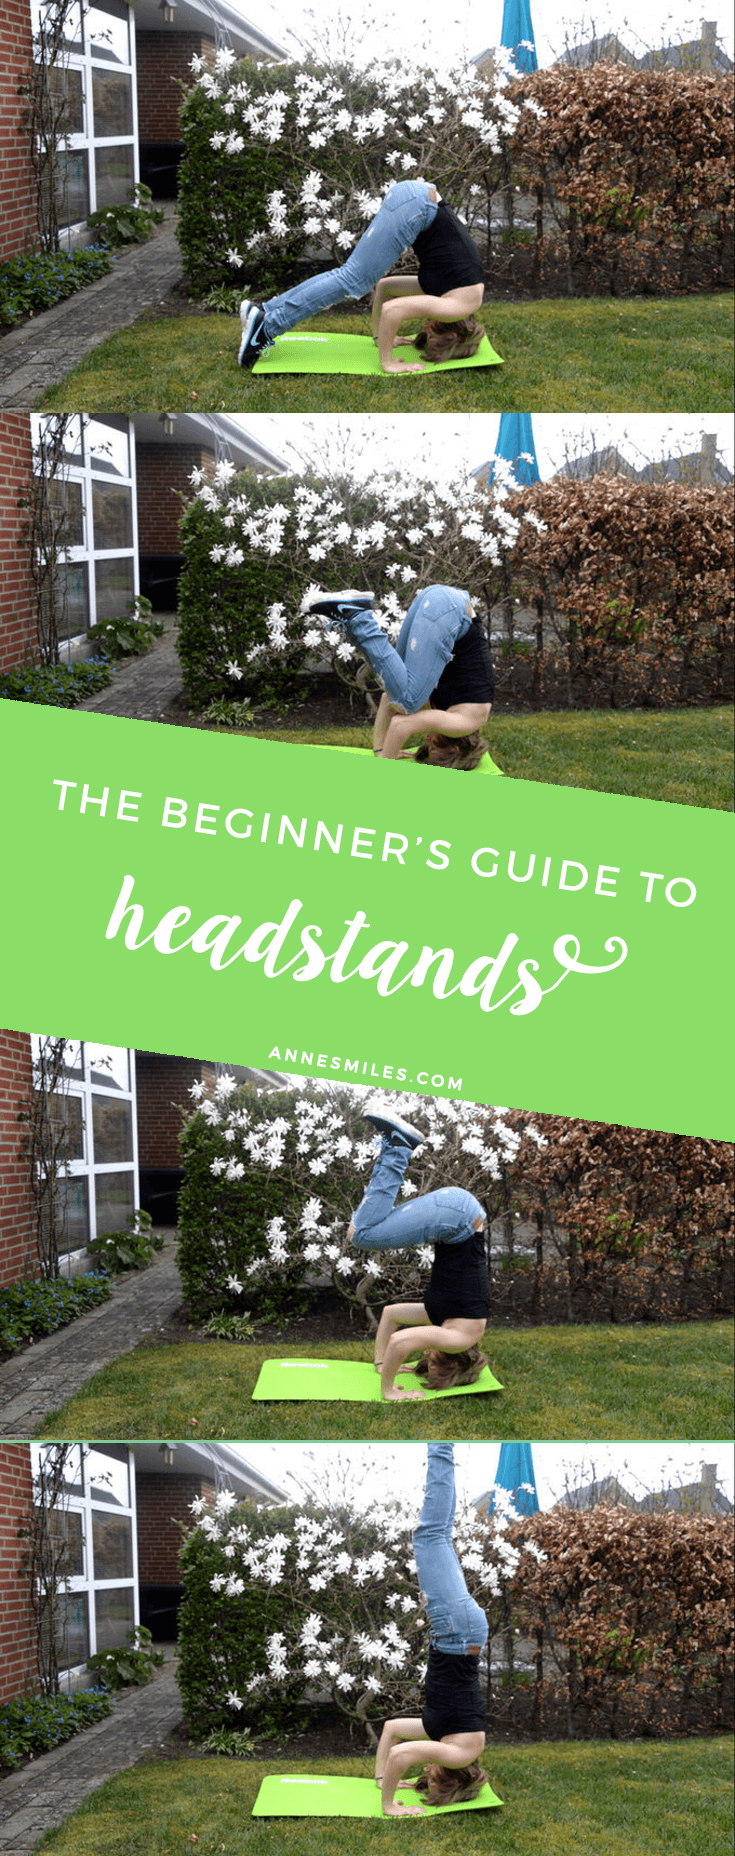 4 easy steps to your first headstand - A Yoga guide for beginners #yoga #inversions #headstand